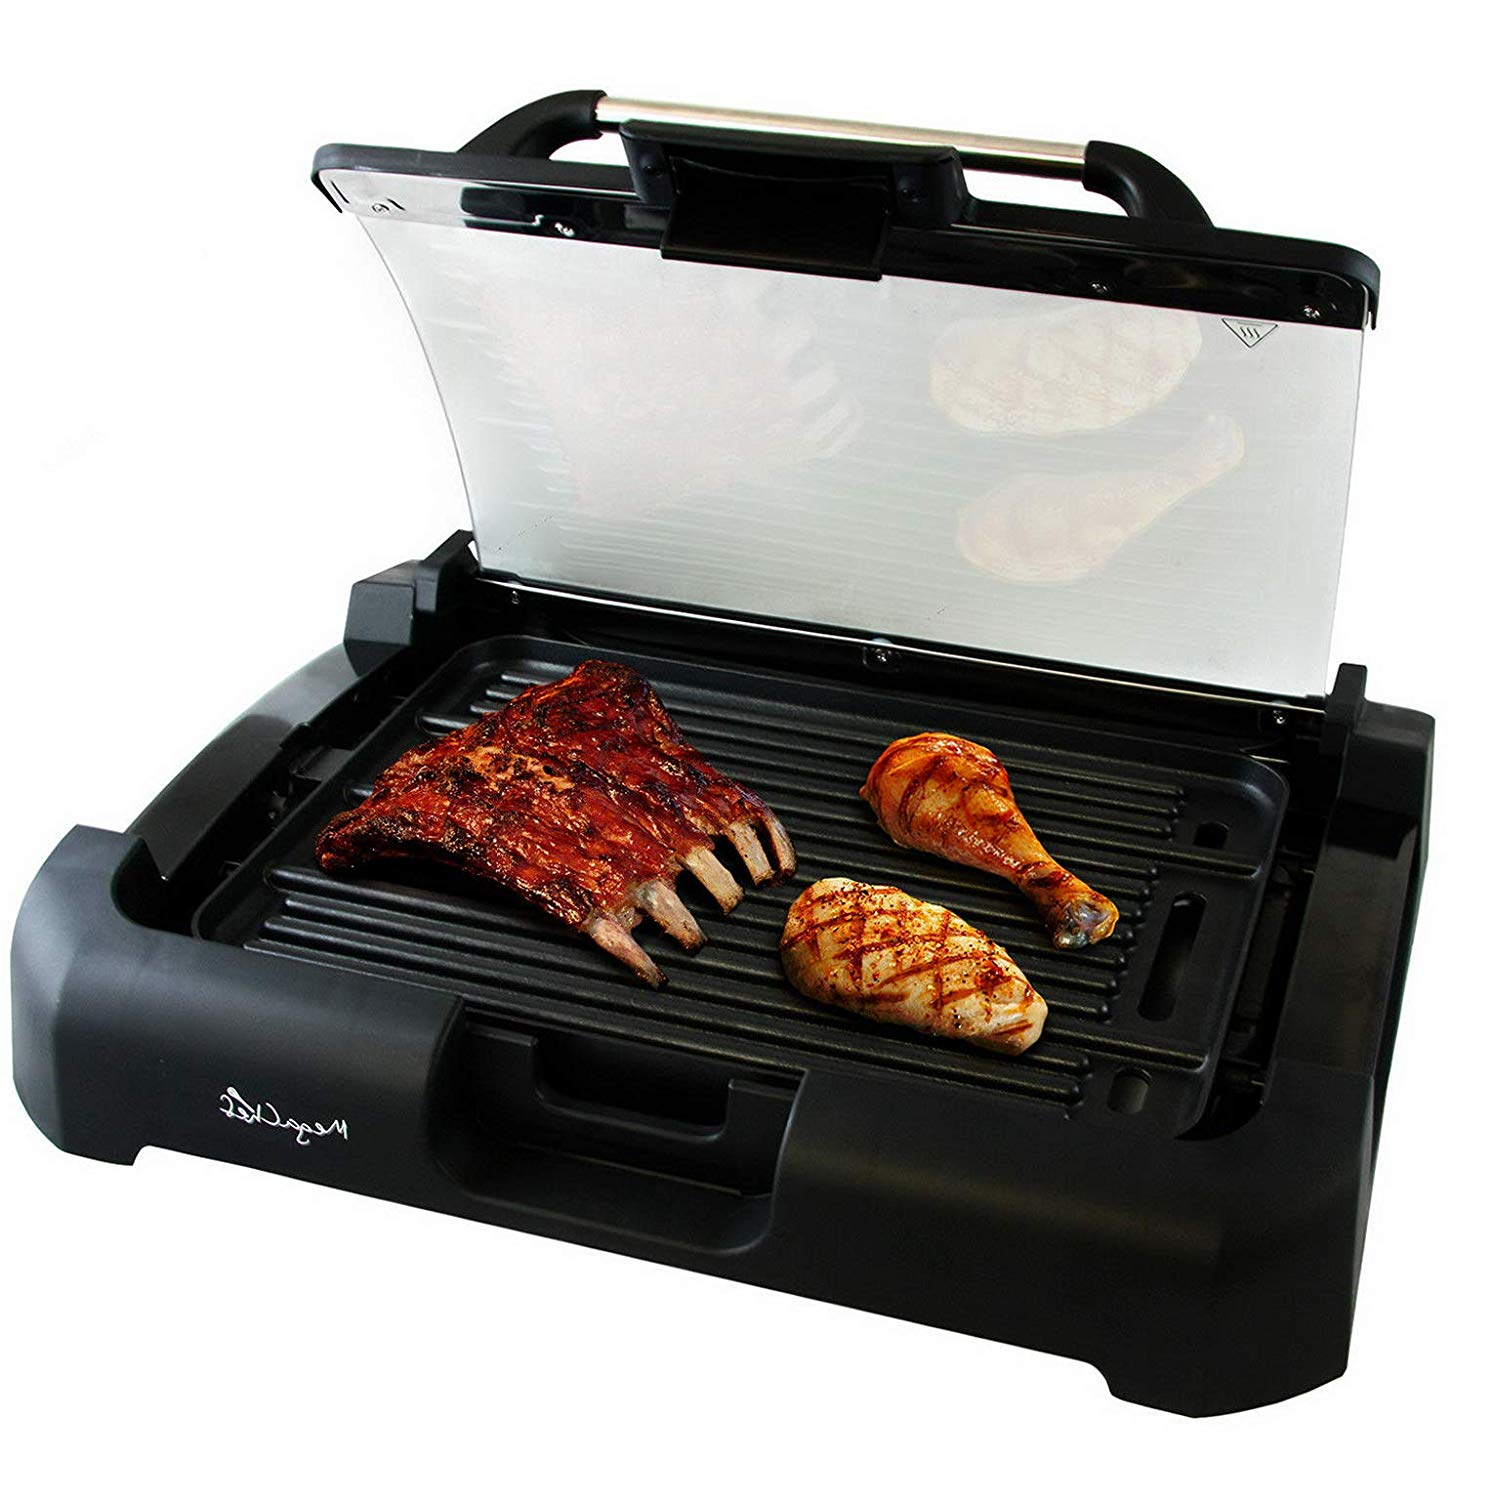 \Smokeless Indoor Electric Grill 1800 Watts Non-Stick BBQ Removable w/Glass Lid | Model GRLLST - 262